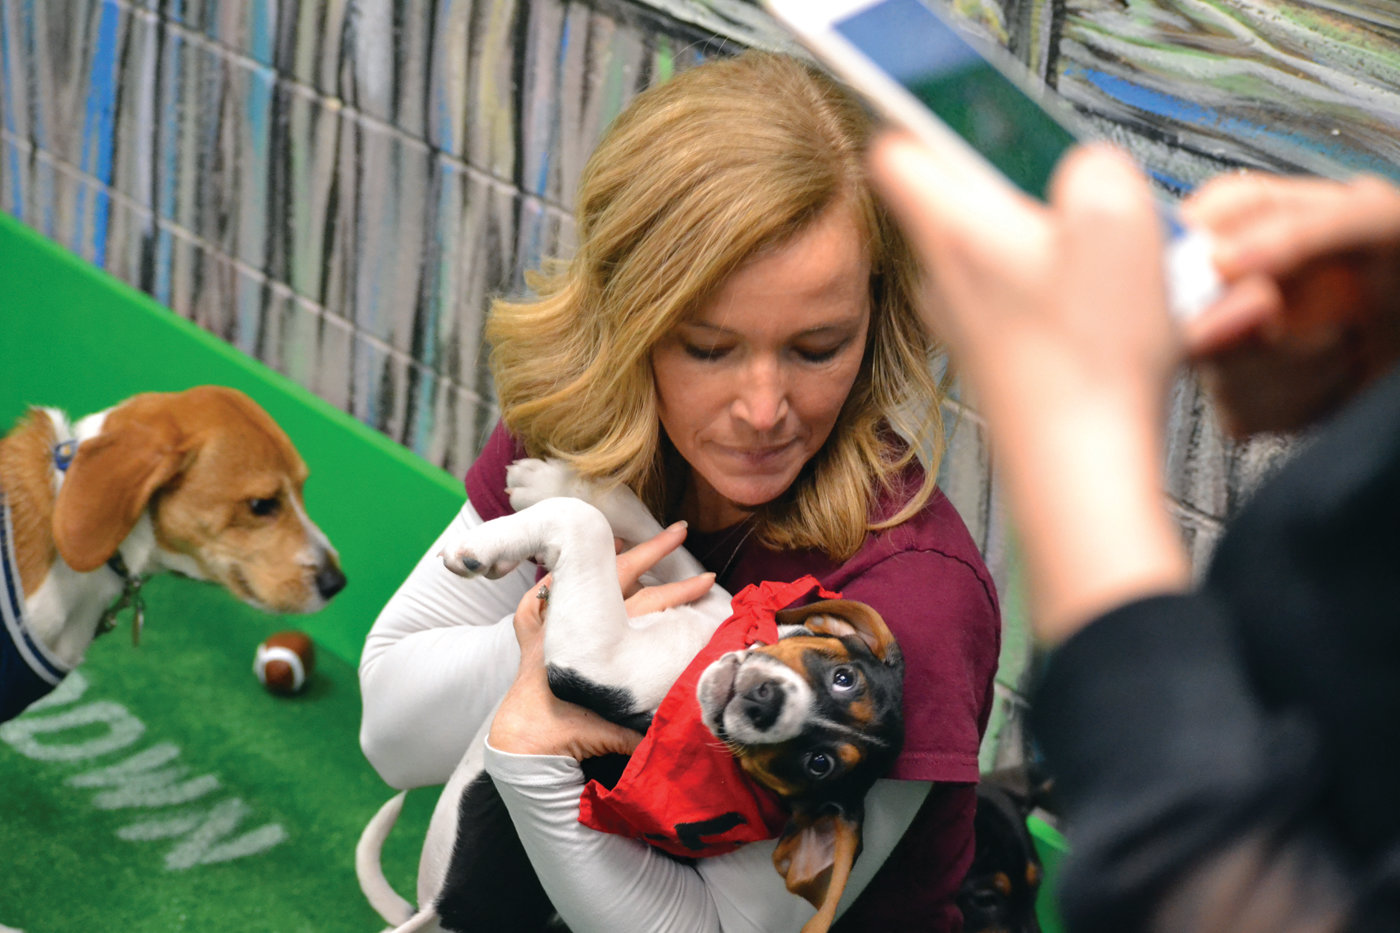 SUPER MOM: Leslie Summer wrangles one of the puppies during the East Greenwich Animal Protection League's Puppy Bowl. Summer is actually fostering 11 of the puppies in her own home, which also has other dogs she has fully adopted.